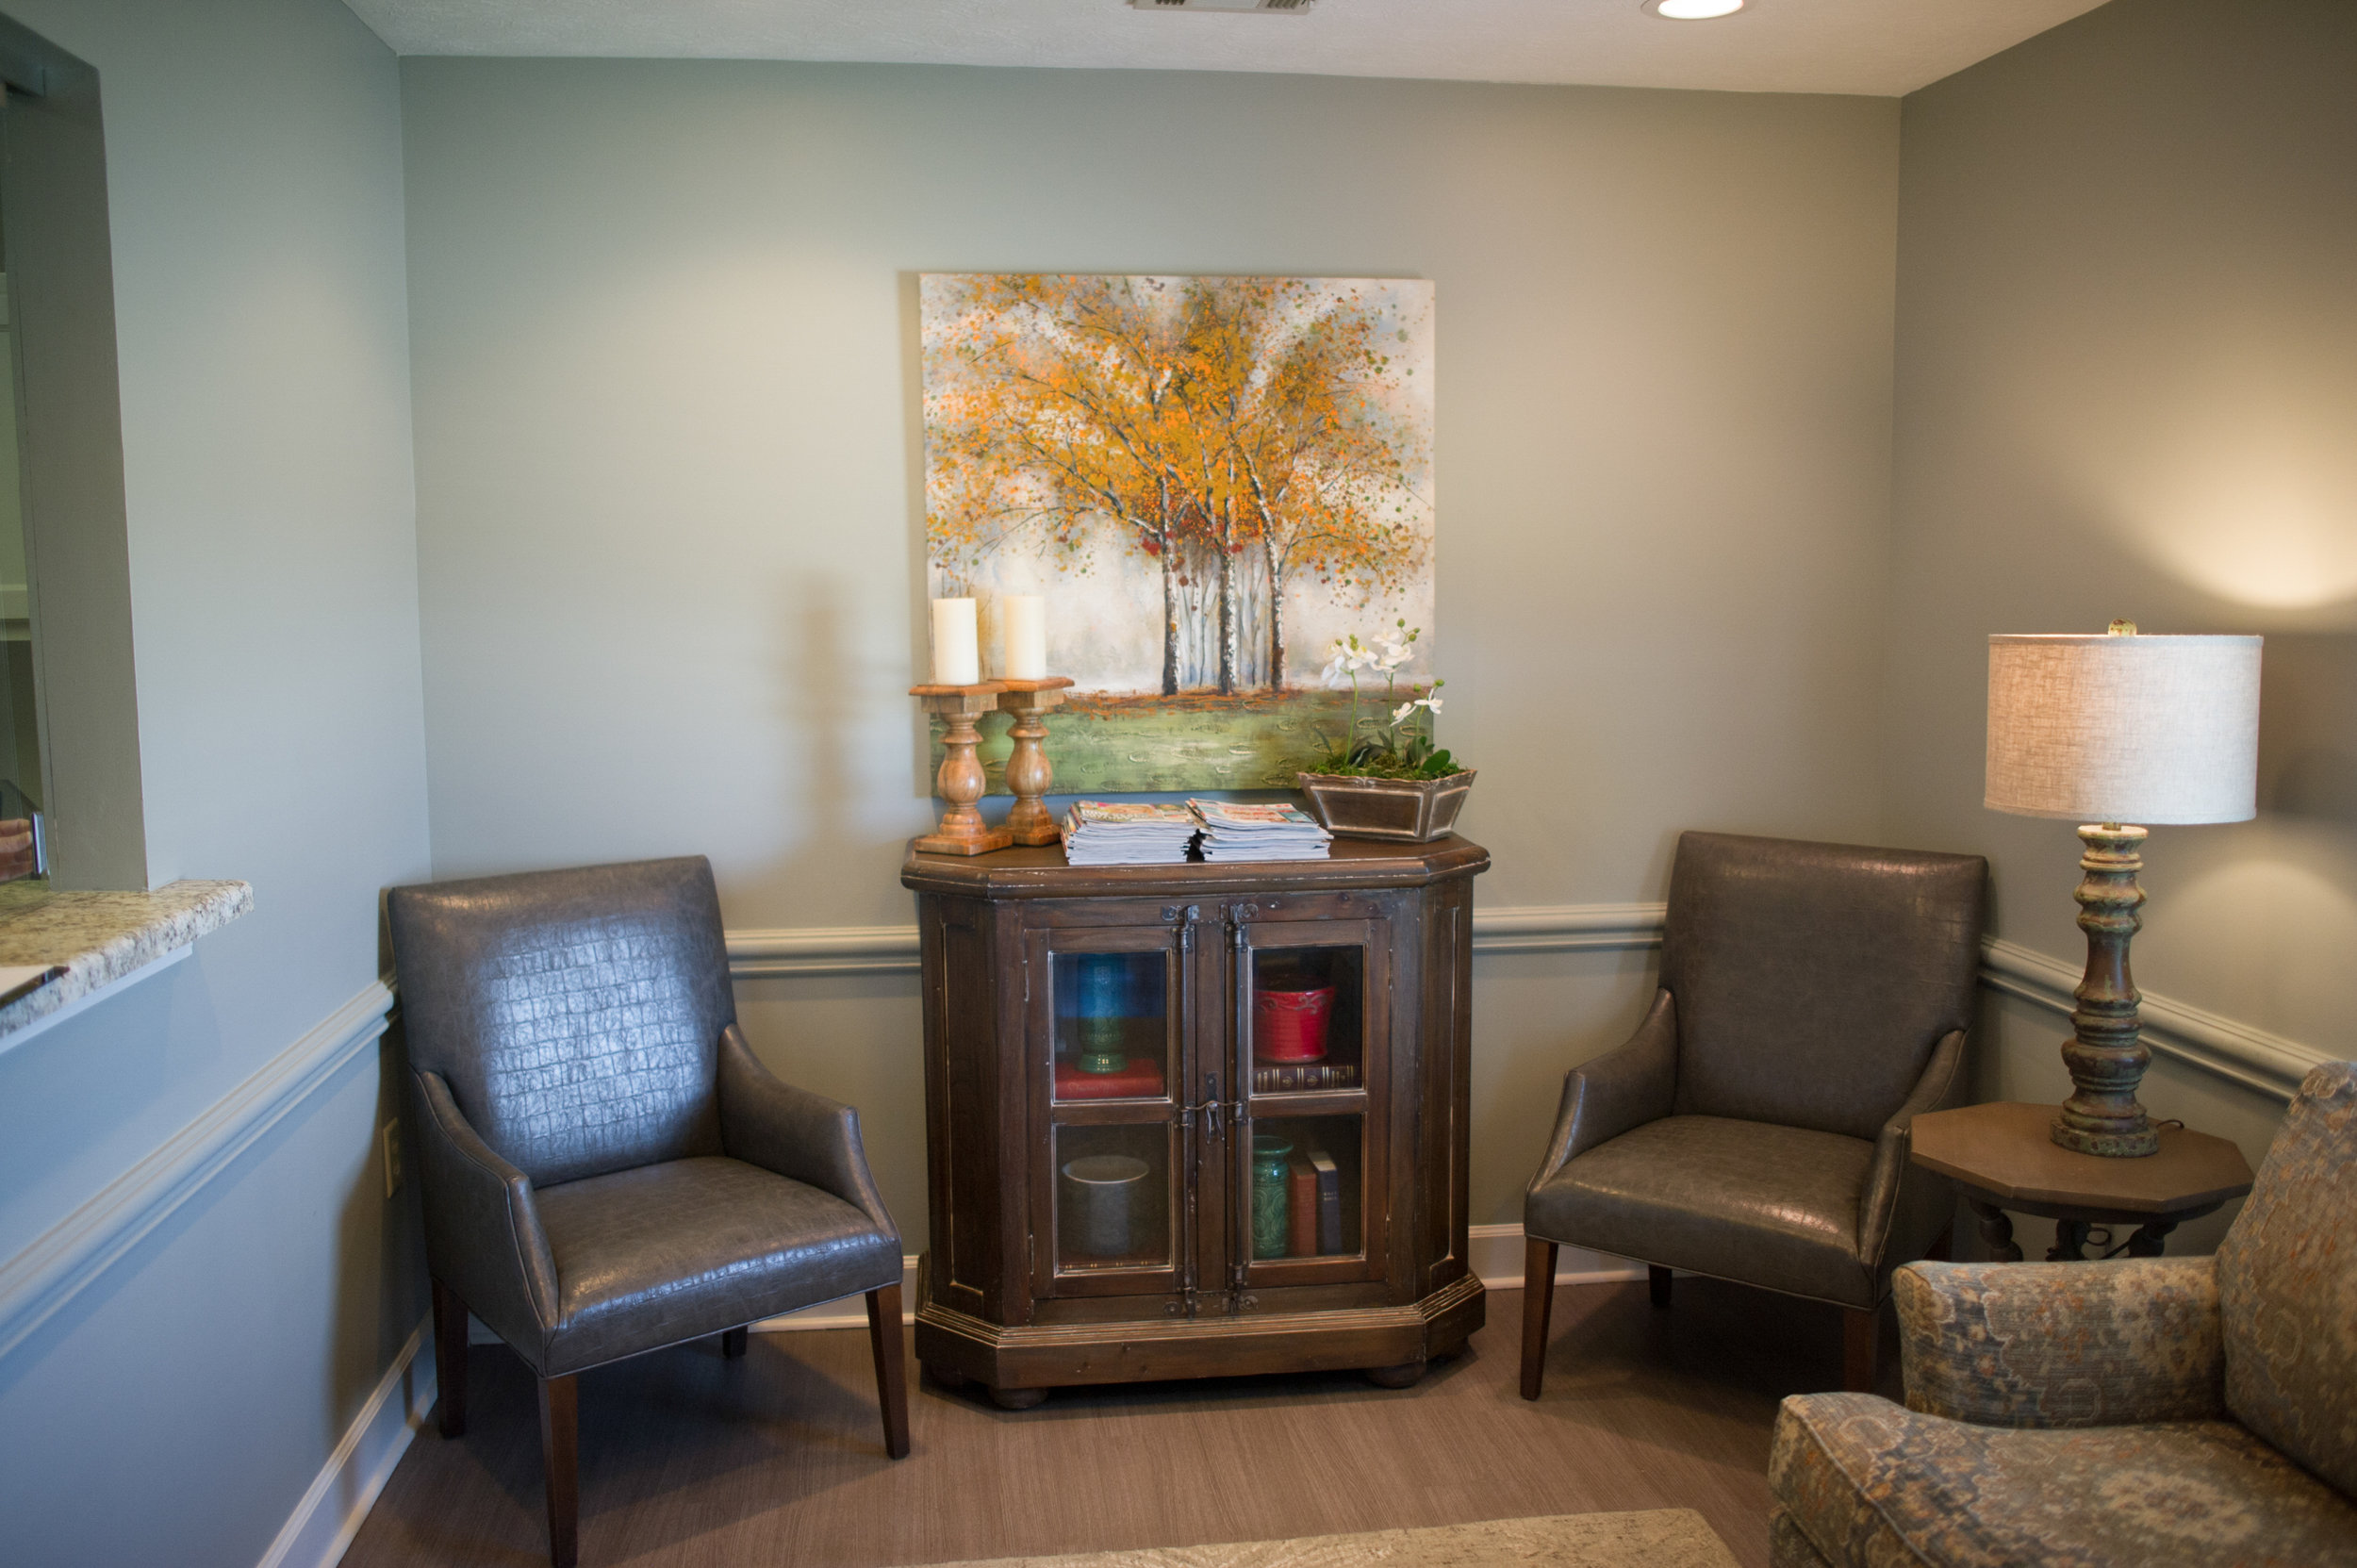 patient waiting area with seating